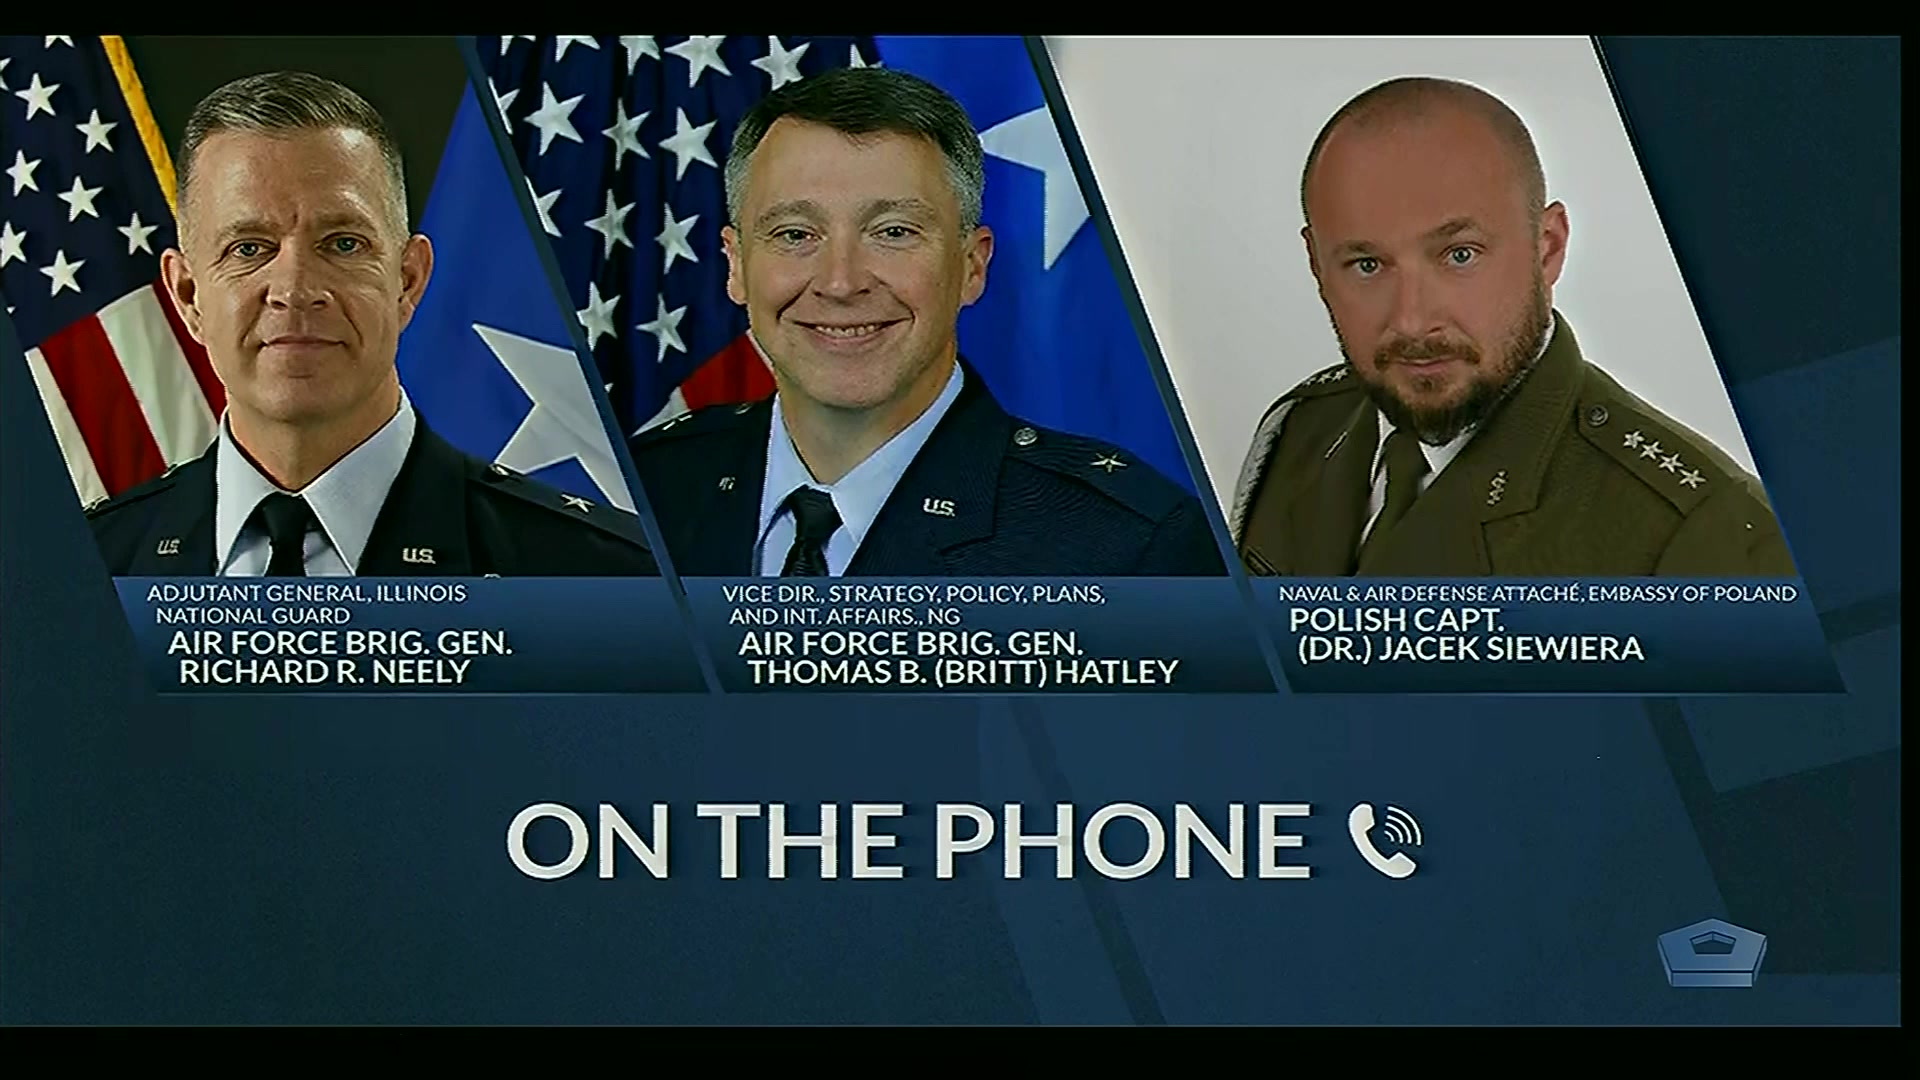 A graphic shows portraits of three service members.